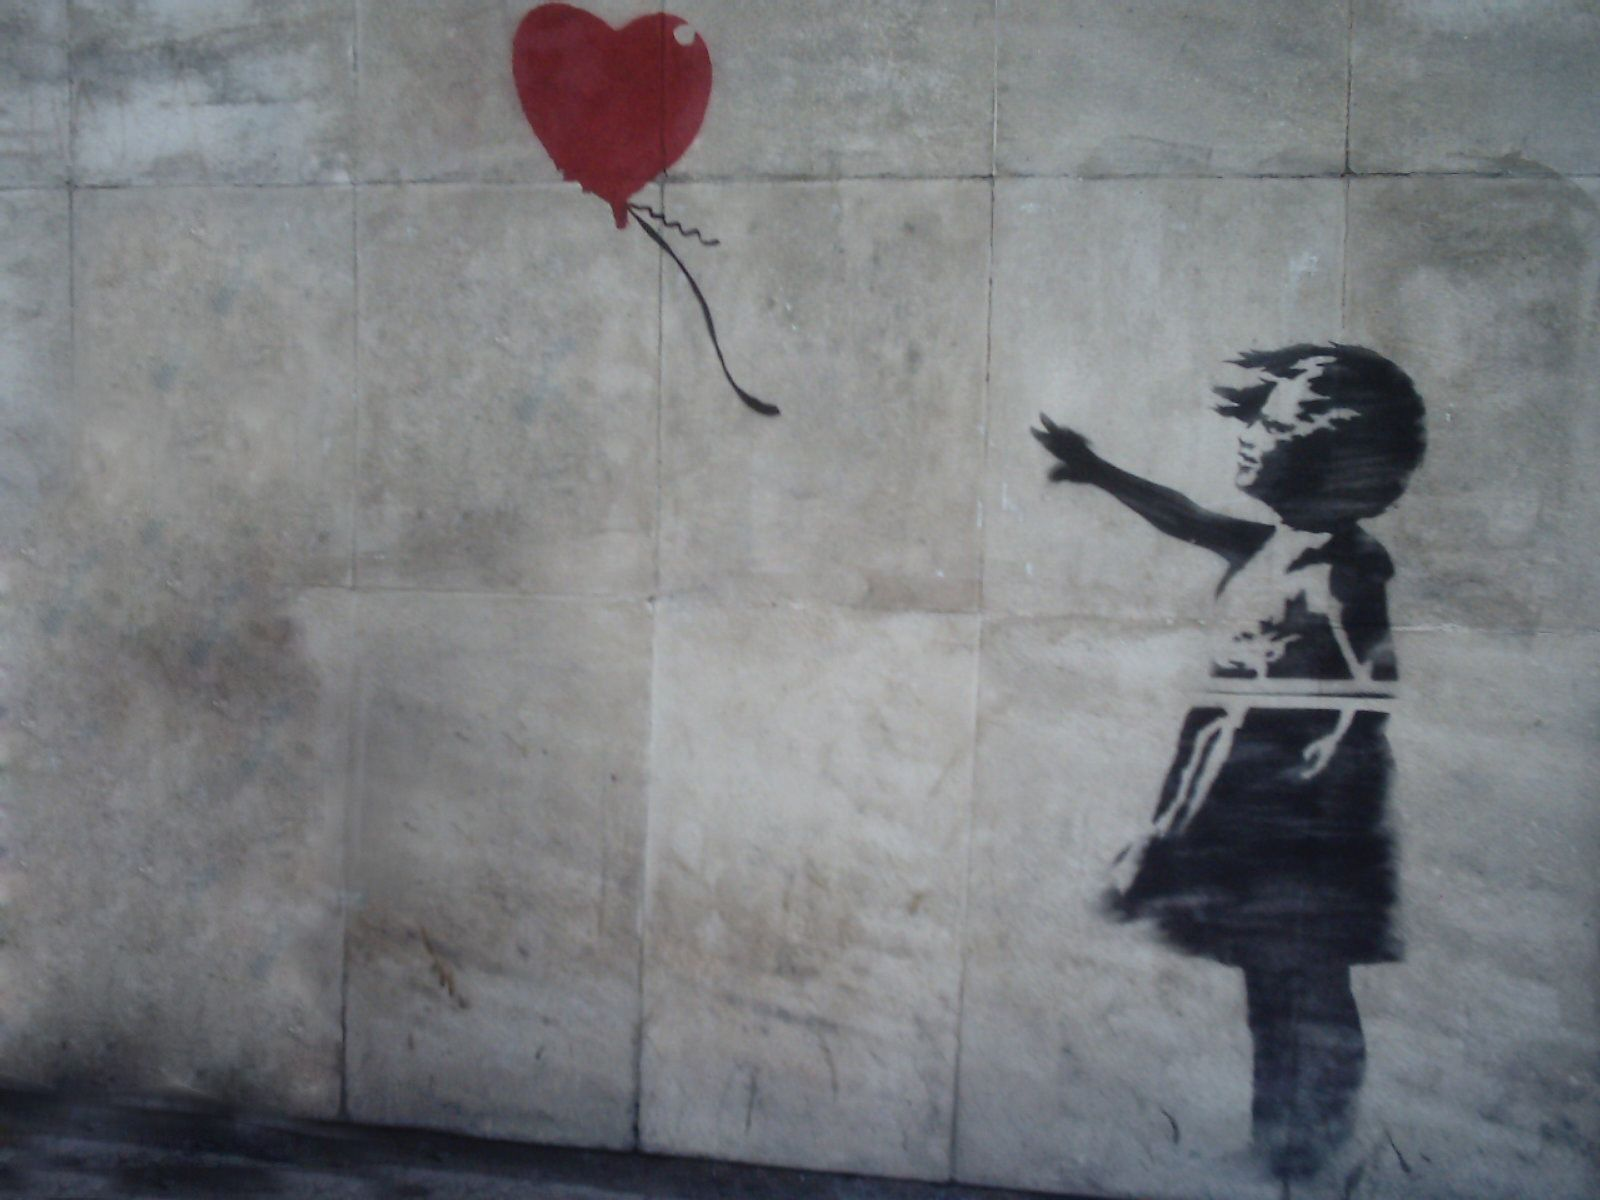 Favorite Artist Bansky Artwork's Name Balloon Girl